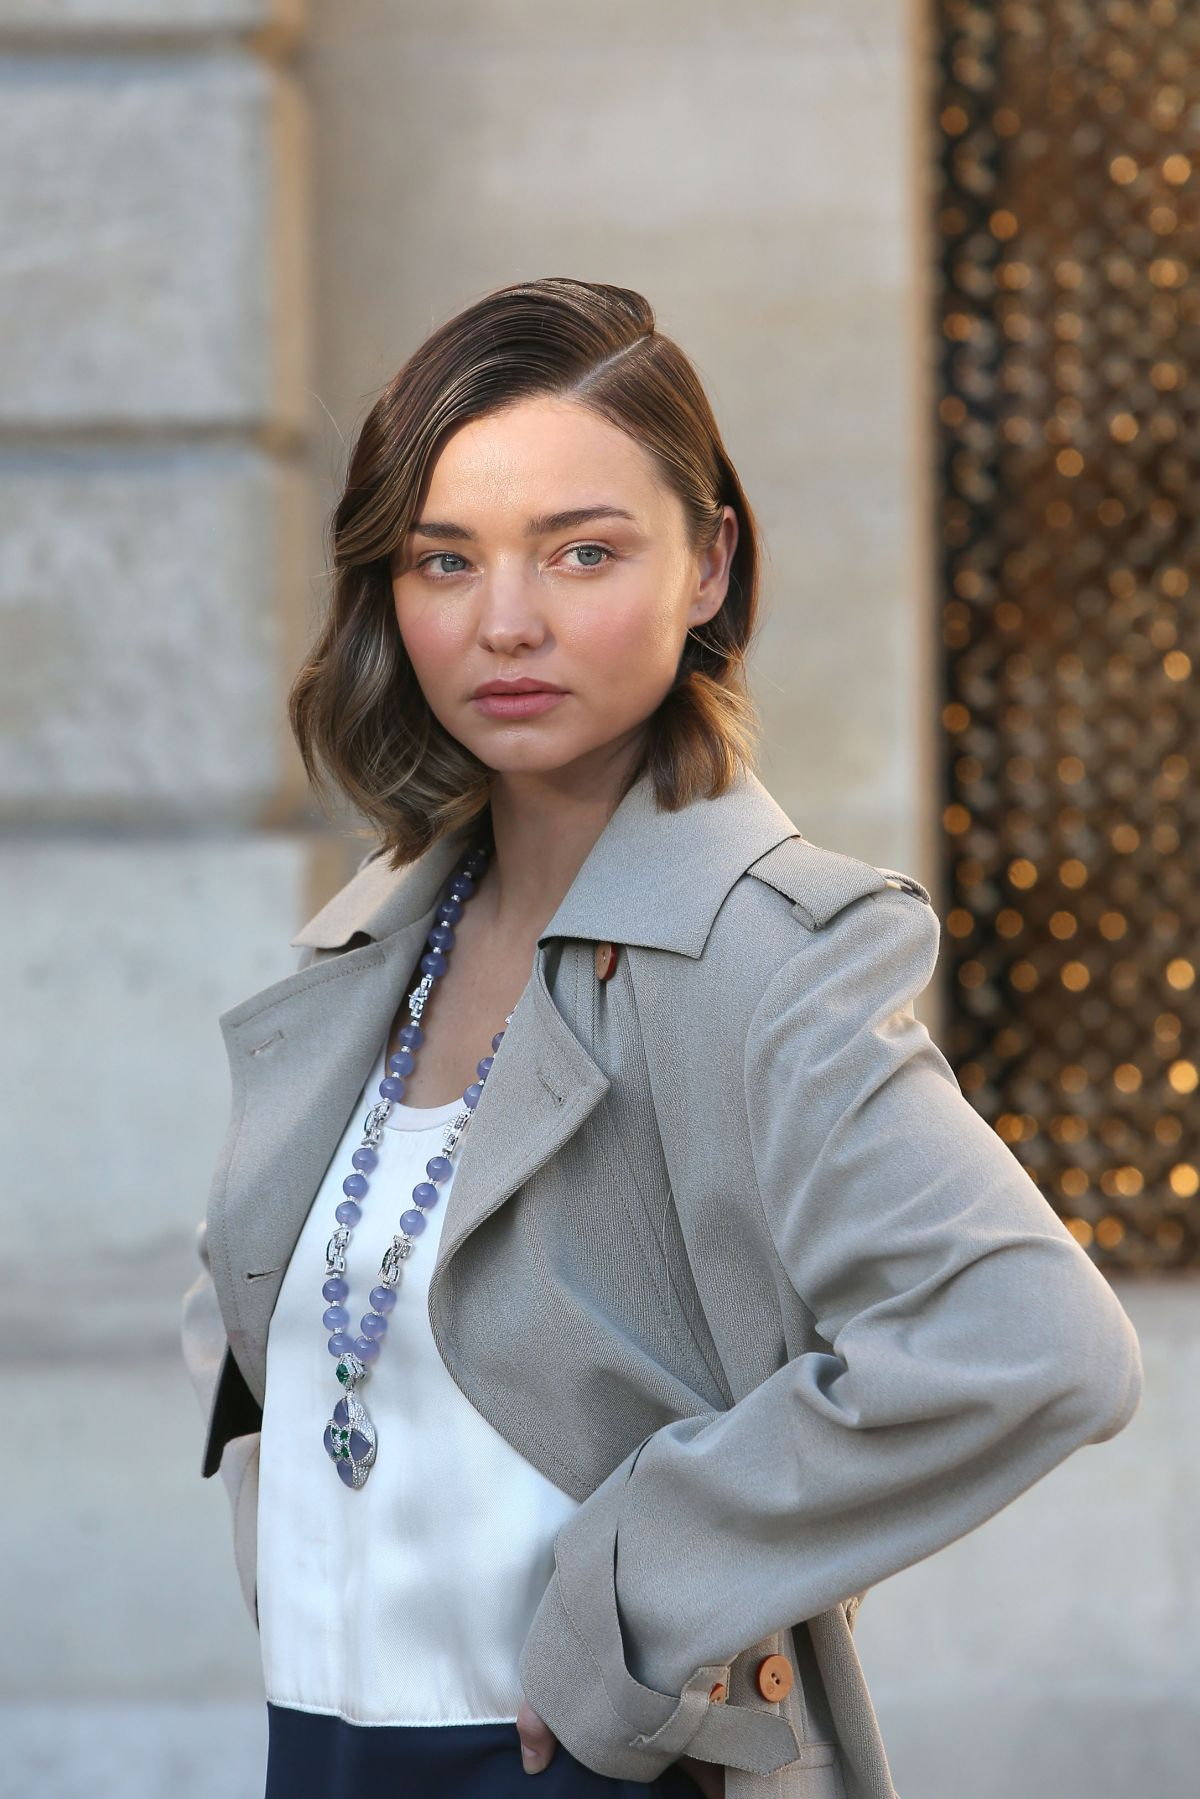 MIRANDA KERR on the Set of a Louis Vuitton Photoshoot in Paris 10/04 ... Miranda Kerr